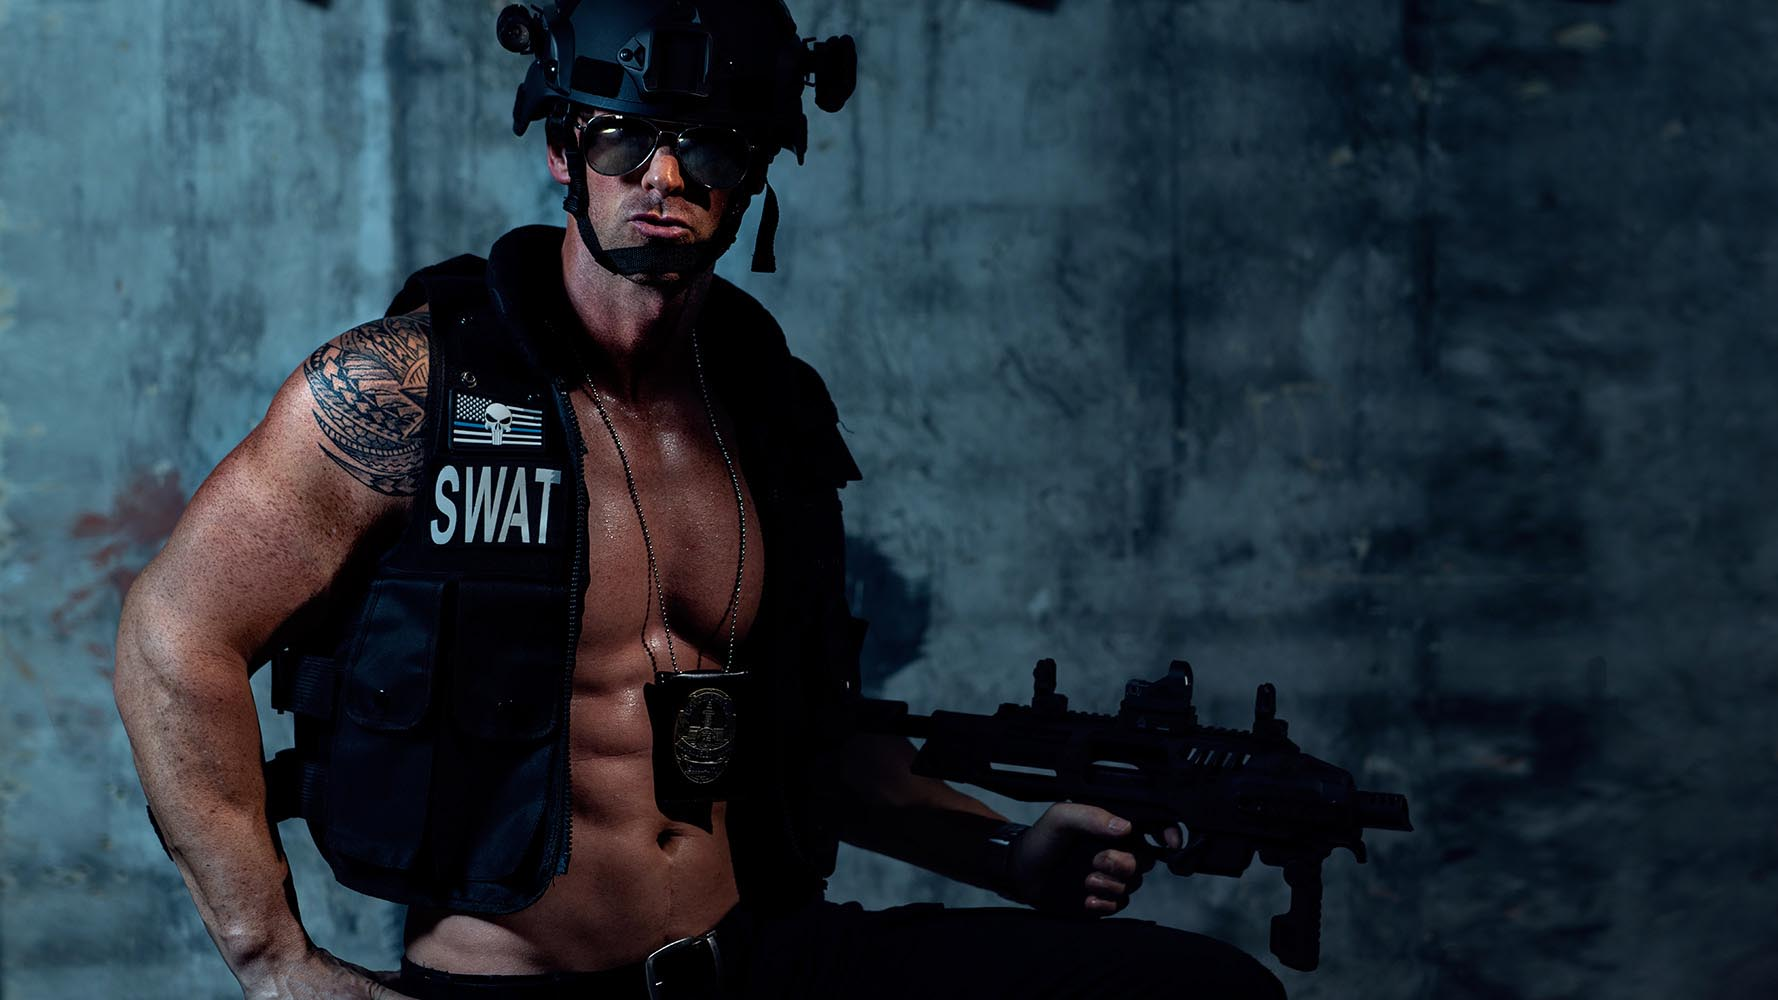 Stripper CHRIS aus Wien als SWAT Team Member